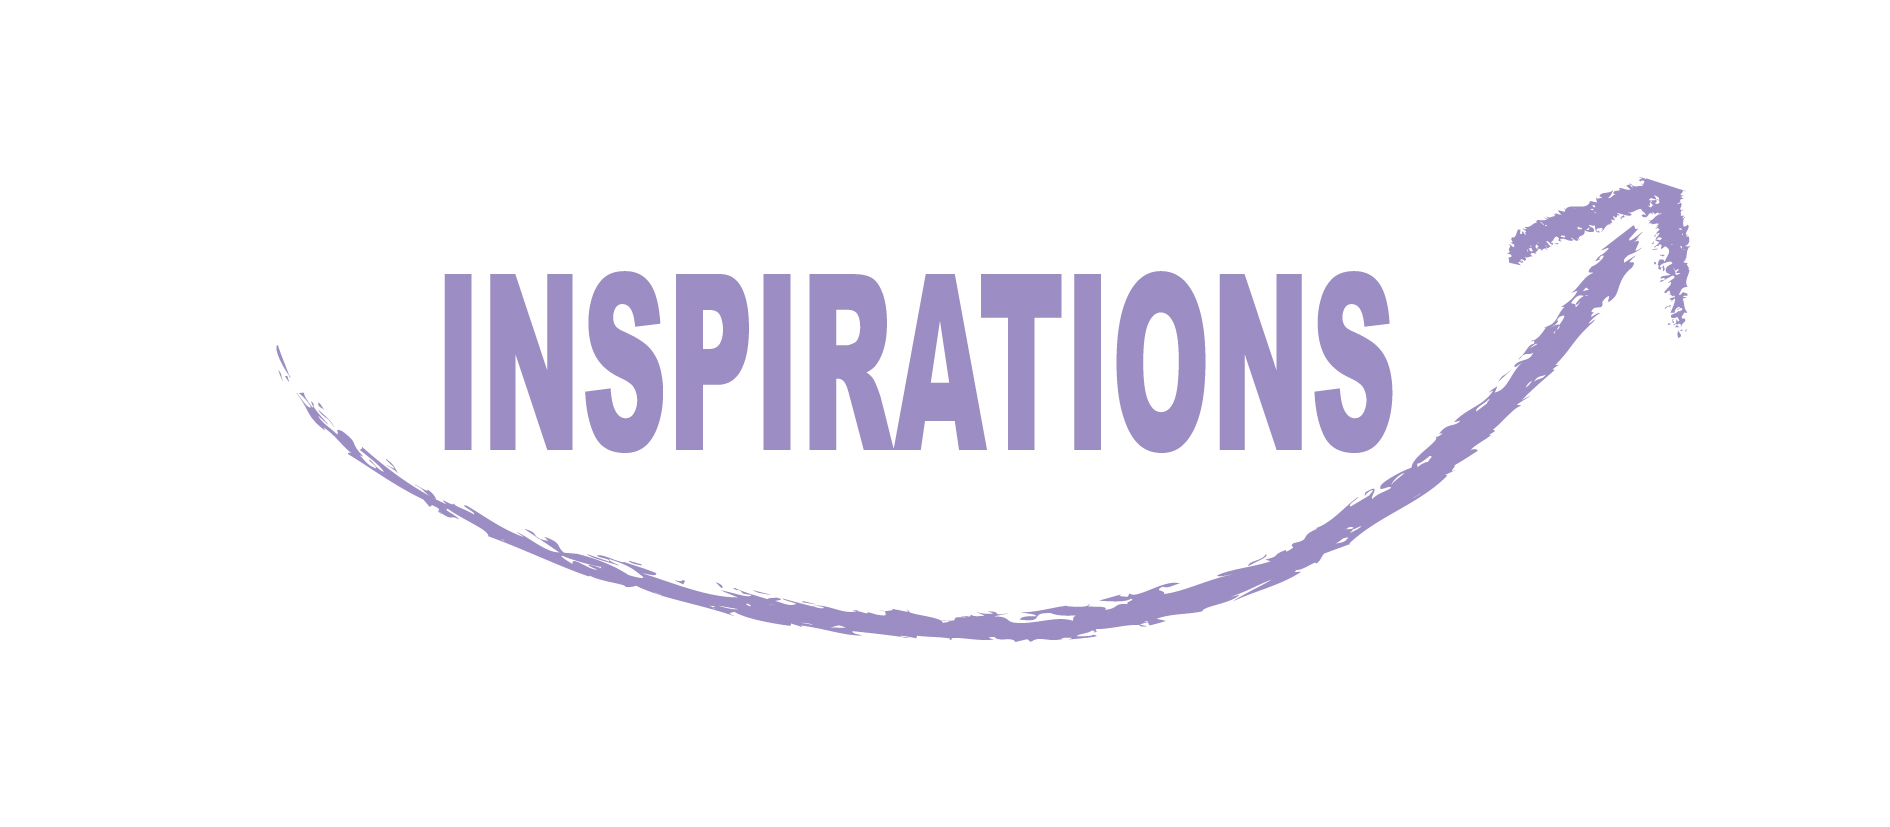 inspirations-logo-re-draw-no-strap